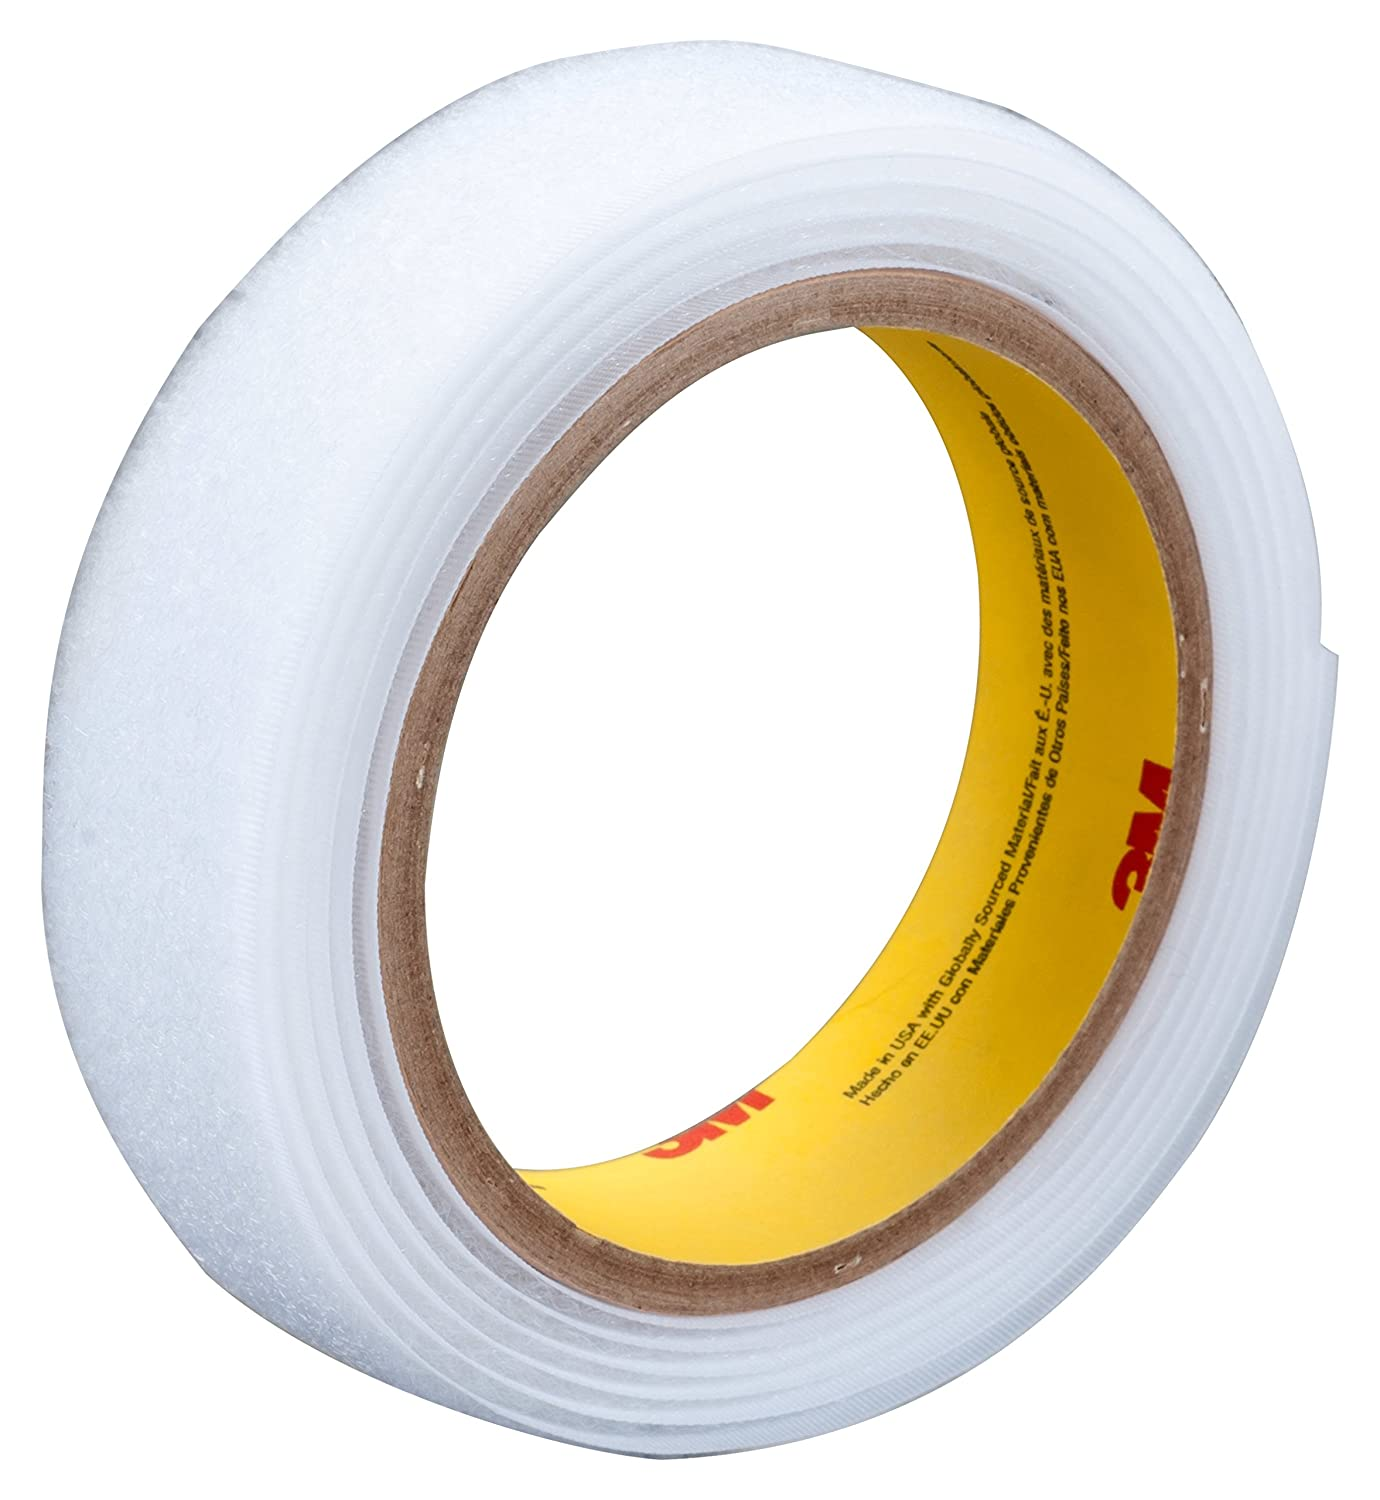 0.15 Engaged Thickness 1 x 50 yd 0.15 Engaged Thickness 3M 58449 Fastener SJ3532NFSR Hook Functional Splice White 1 x 50 yd